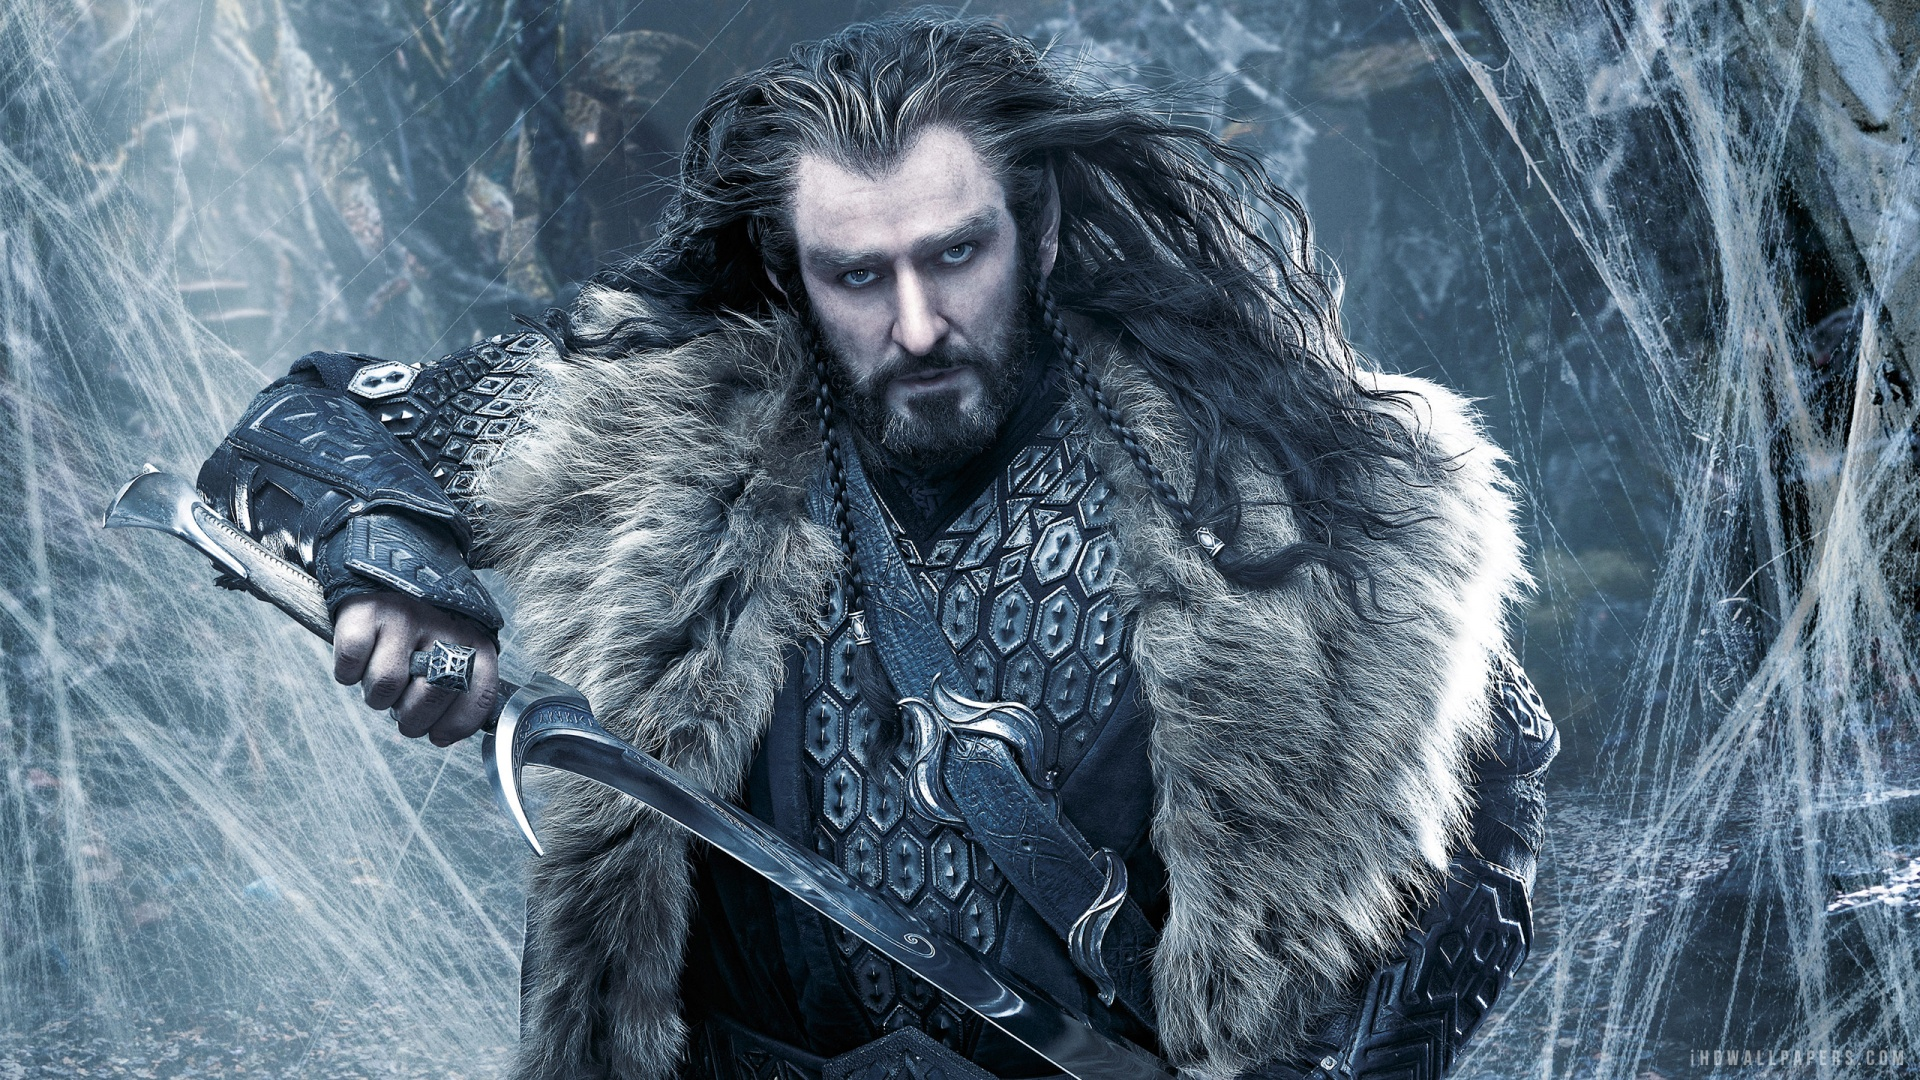 Thorin in The Hobbit 2 HD Wallpaper   iHD Wallpapers 1920x1080